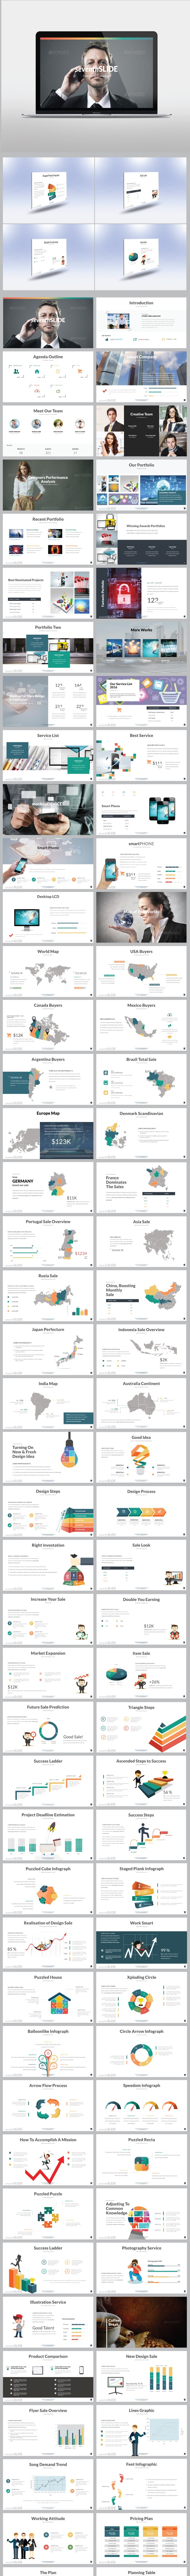 seventhSlide Presentation Template - Business PowerPoint Templates